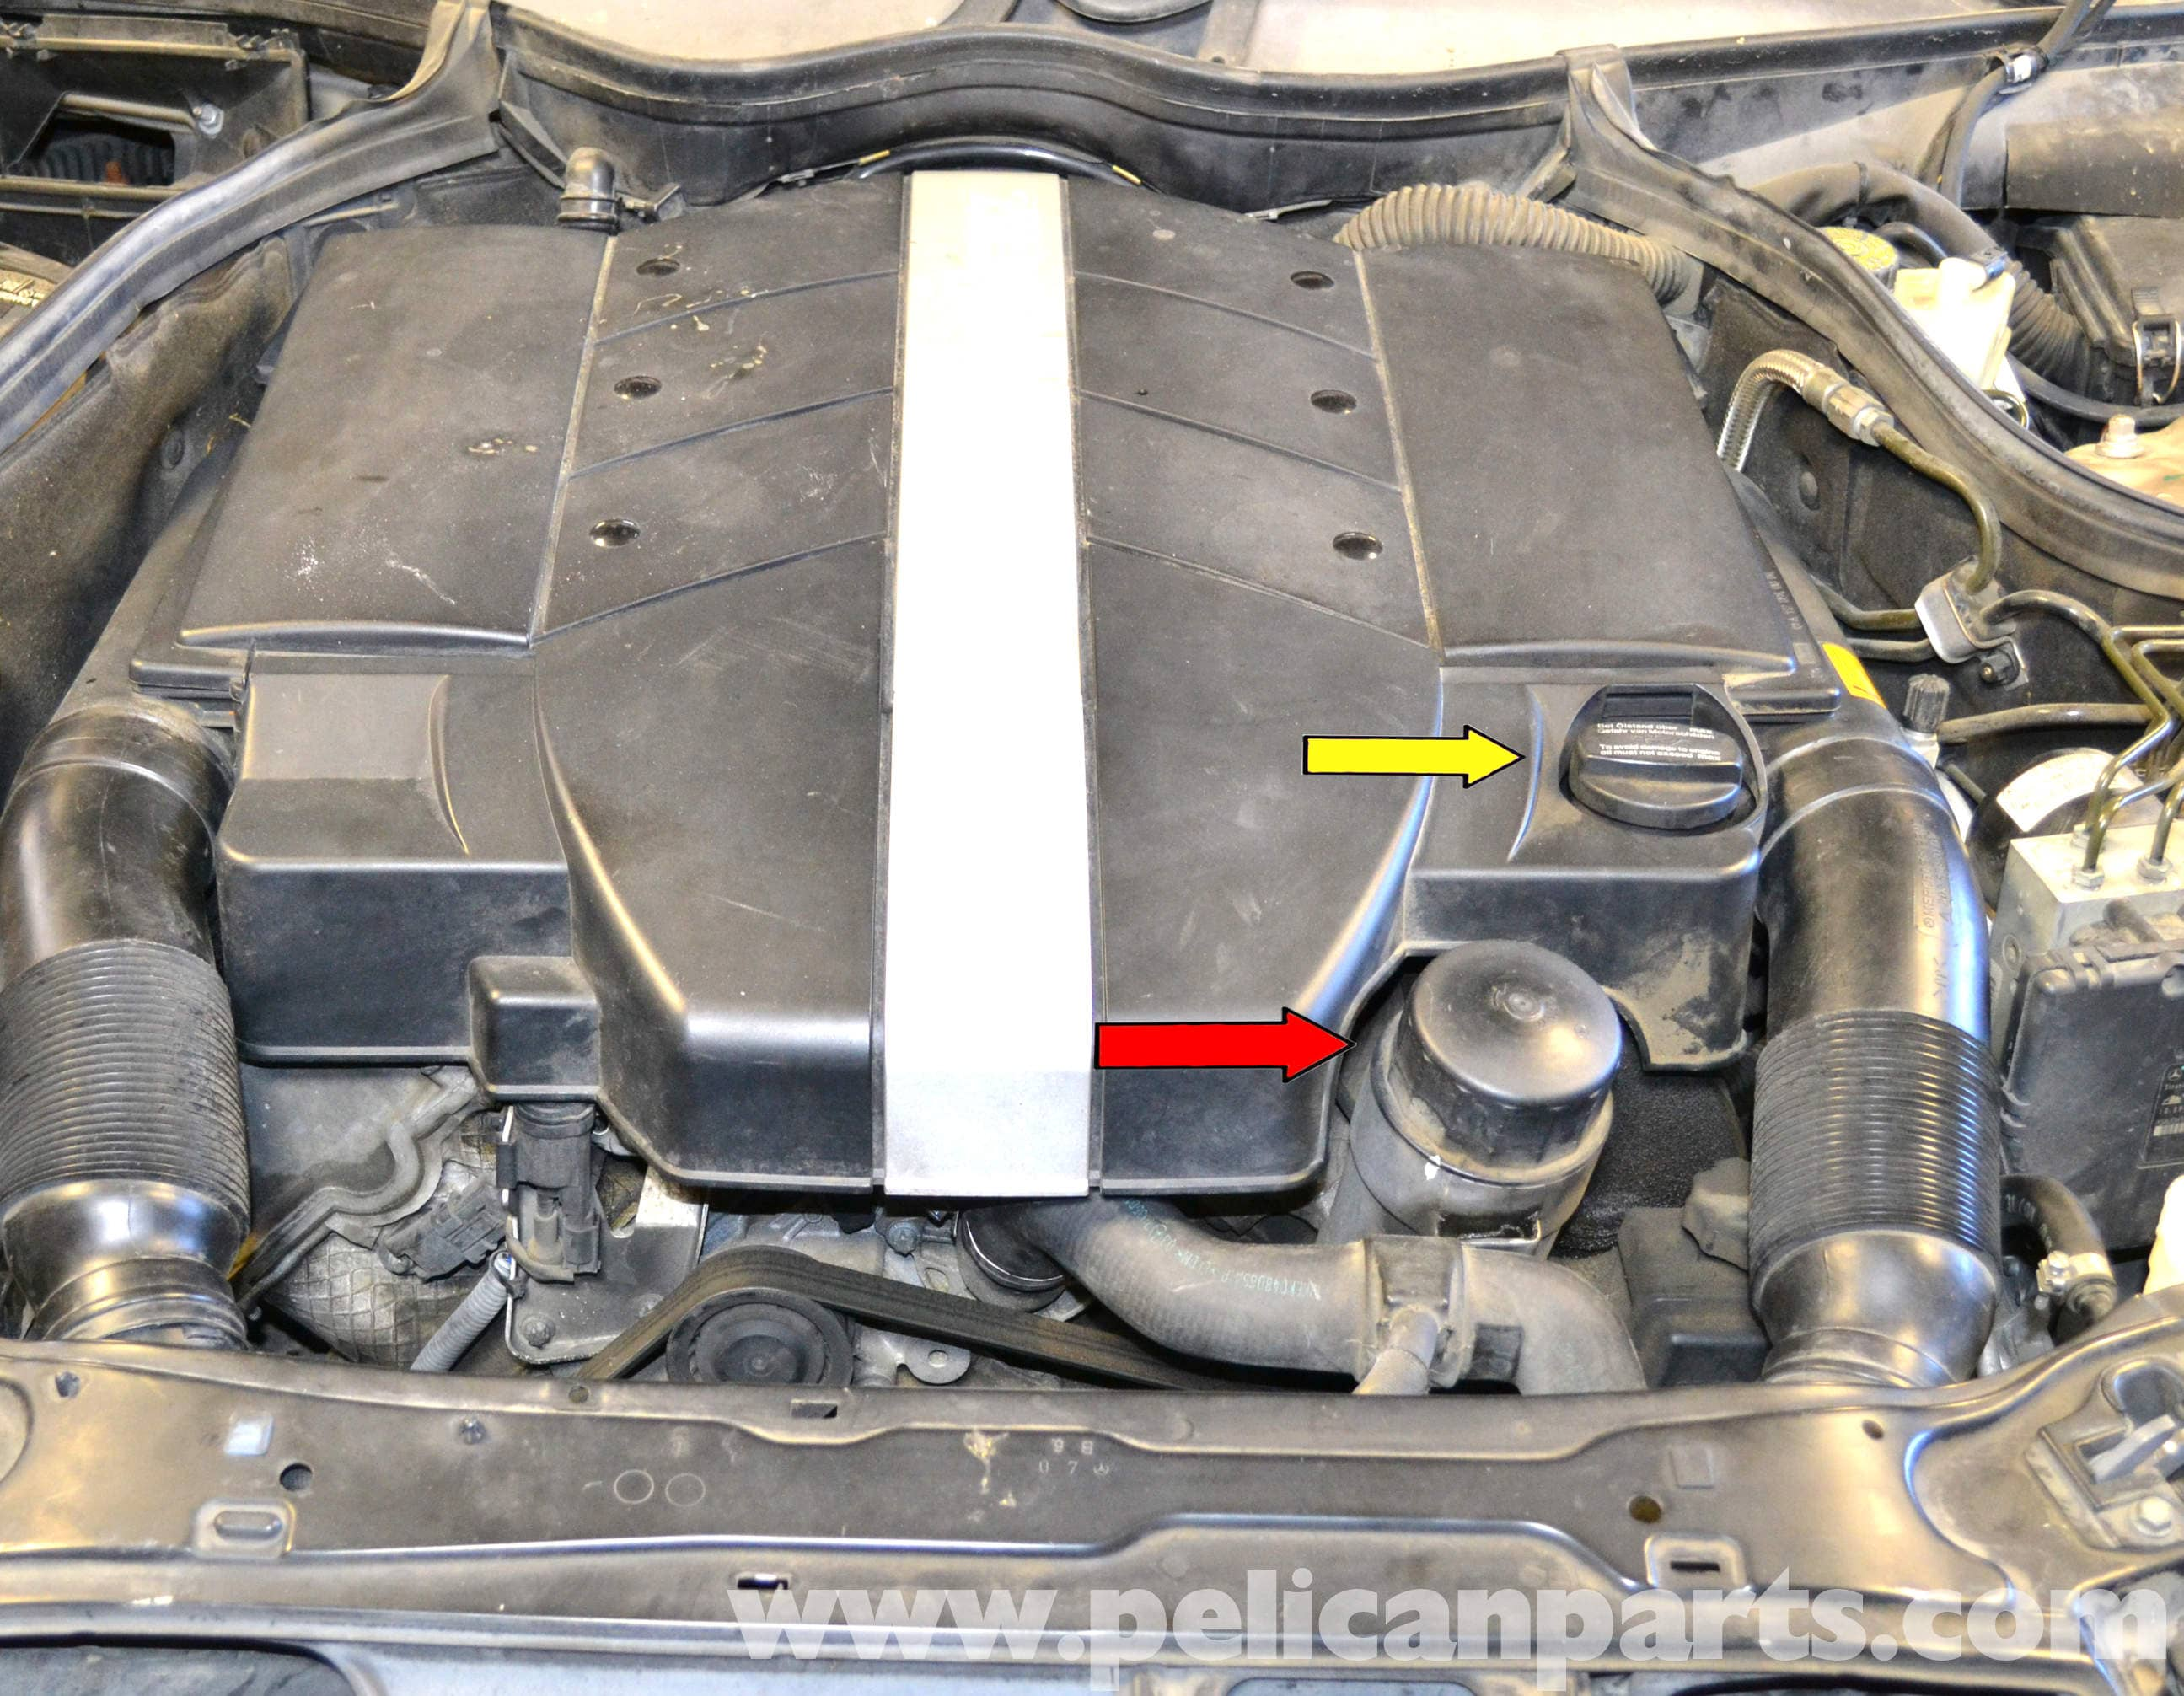 Mercedes-Benz W203 Oil Change - (2001-2007) C230, C280, C350